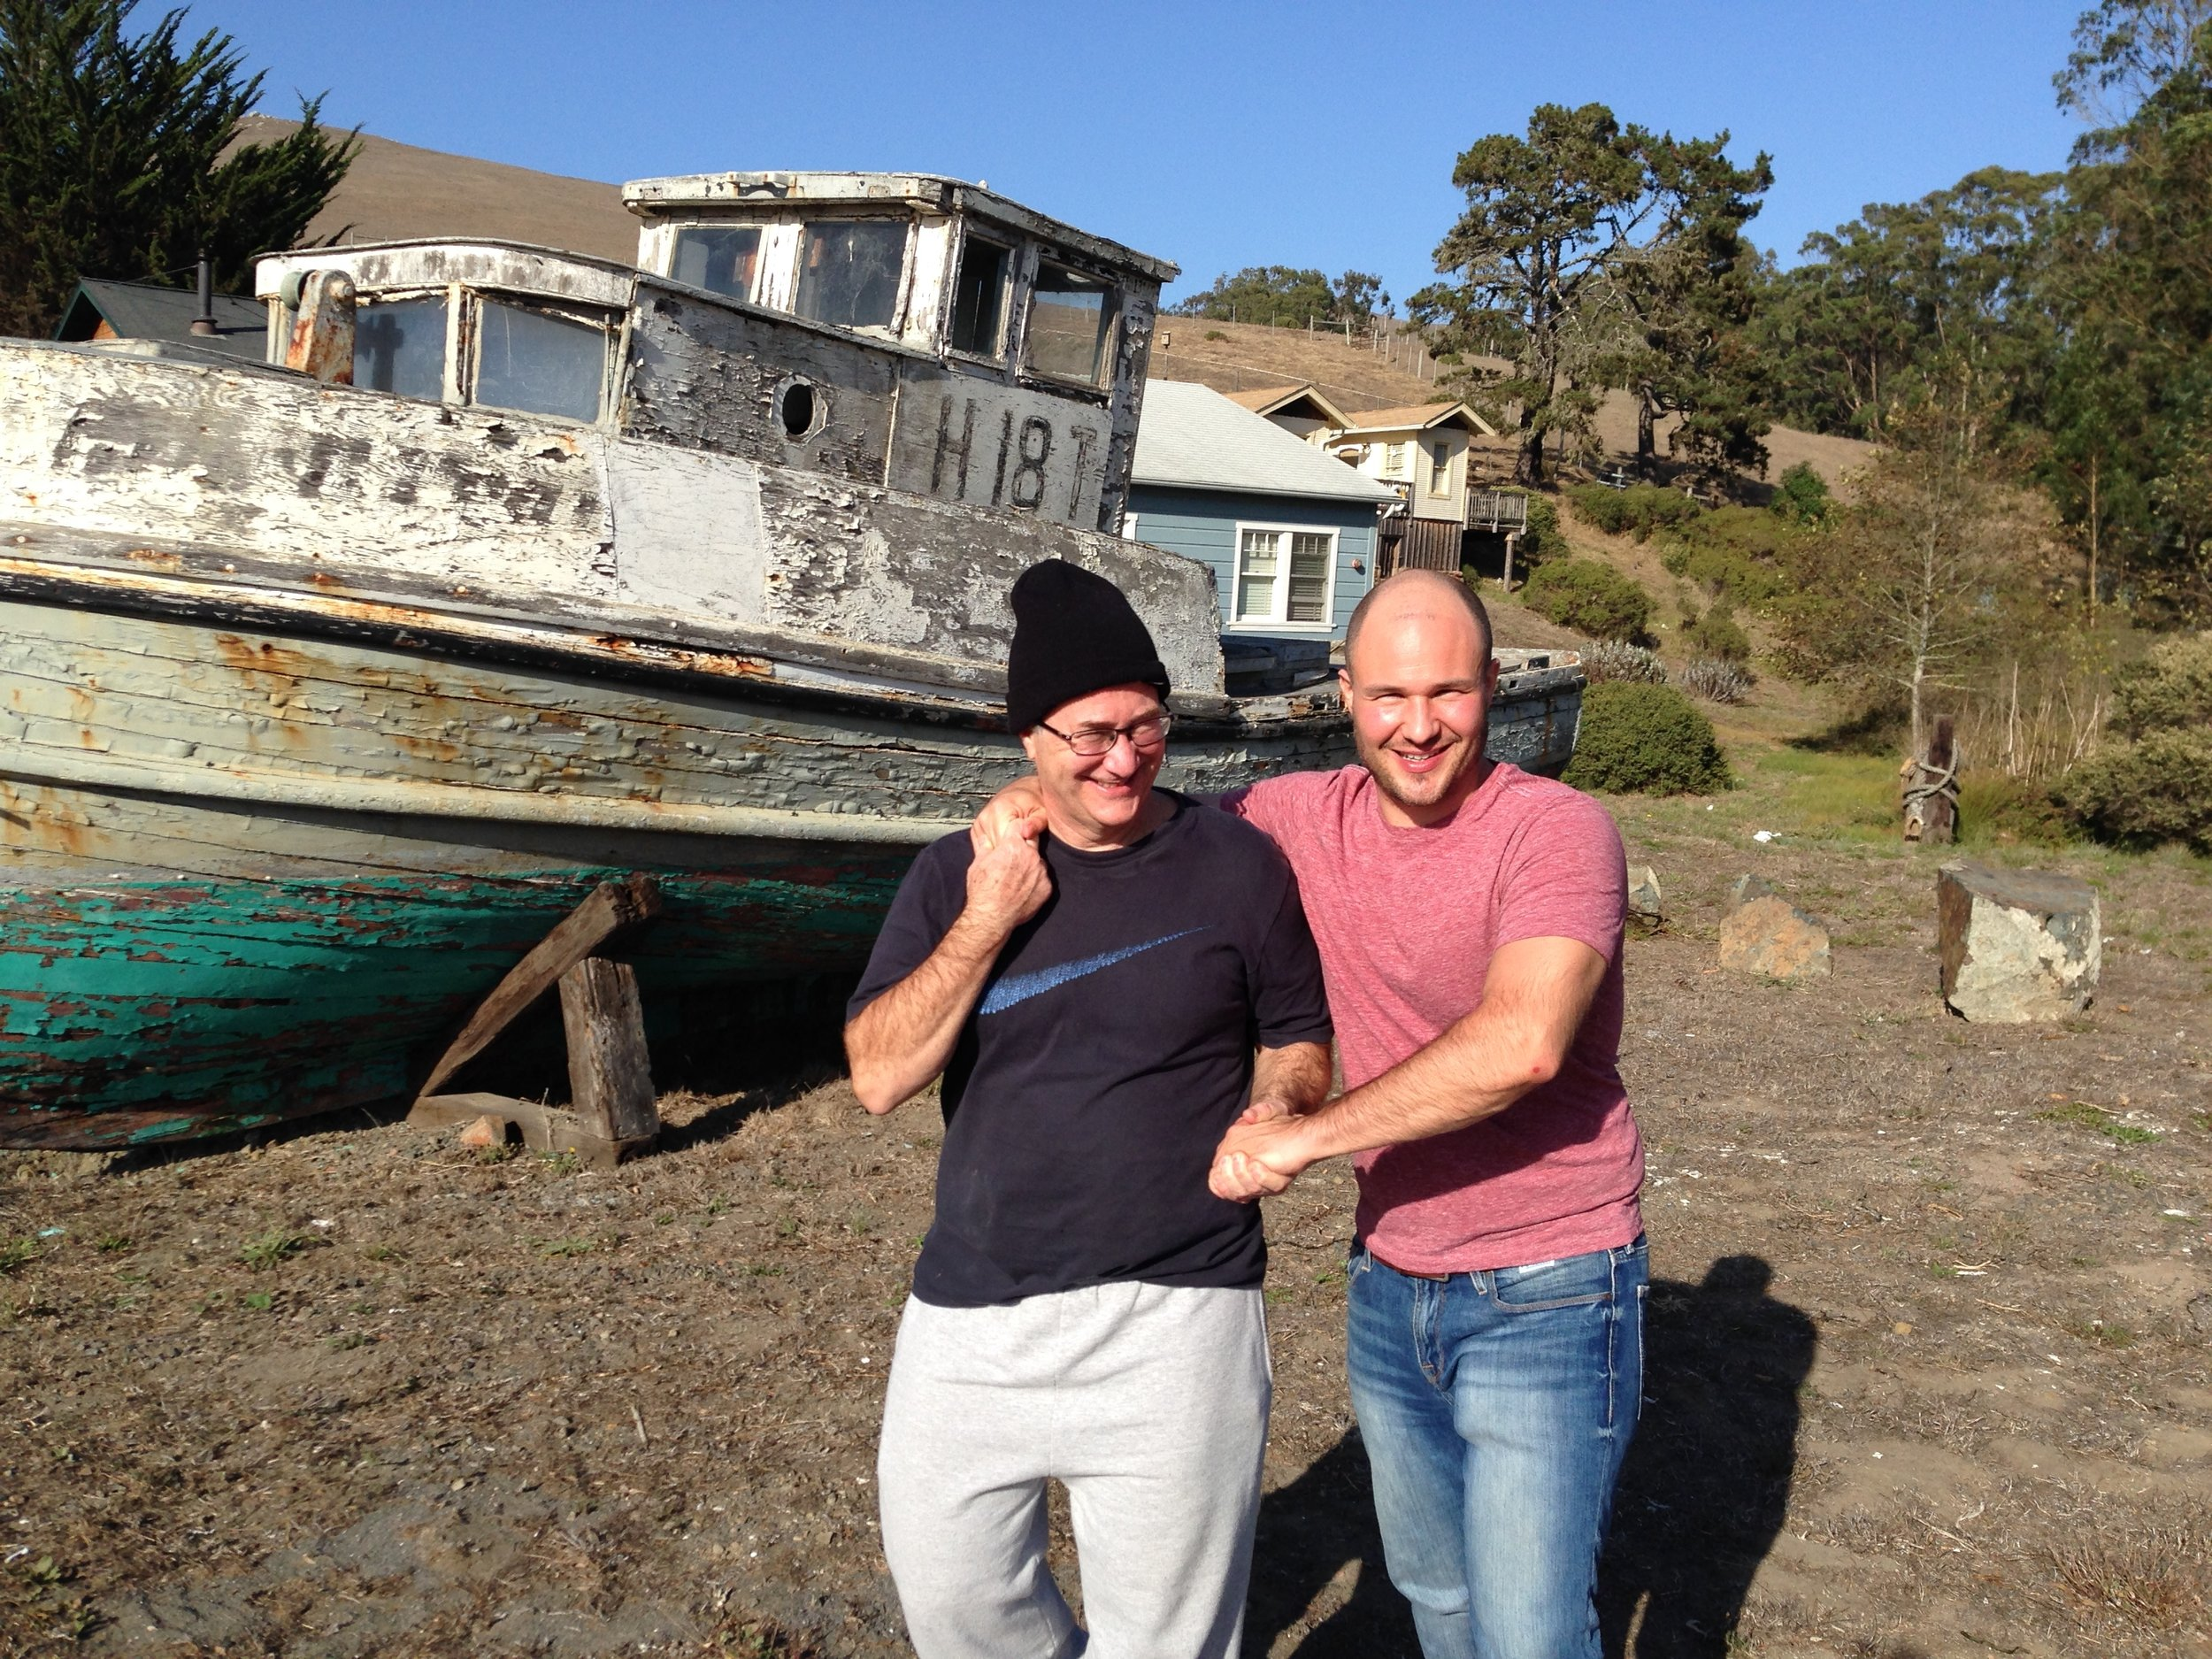 Me and my Pops in Tomales Bay, CA.  Behind us is  The Black Pearl , the inspiration for El Capitán's boat,  The Hispaniola .